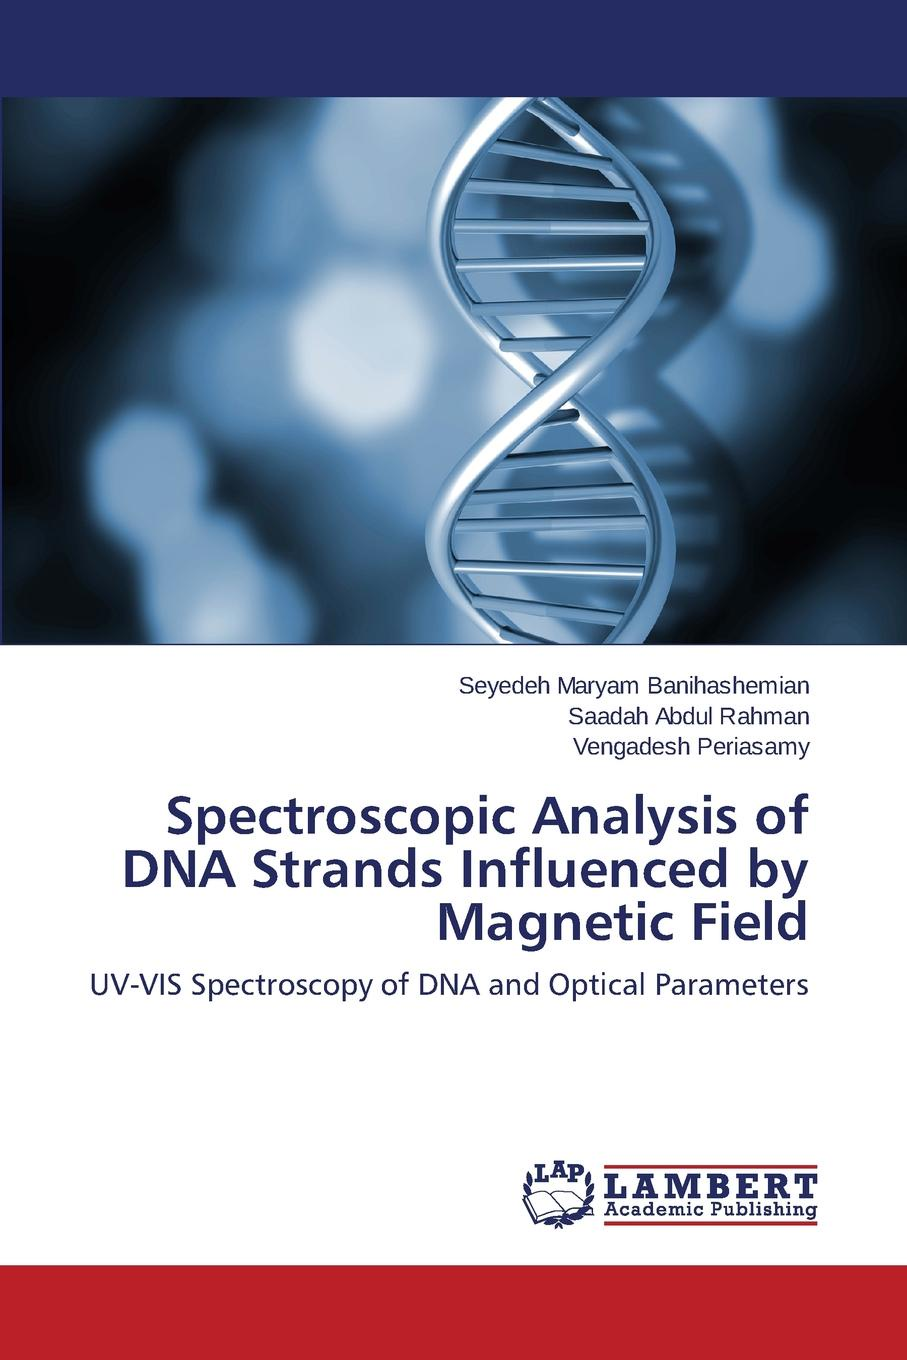 Banihashemian Seyedeh Maryam, Abdul Rahman Saadah, Periasamy Vengadesh Spectroscopic Analysis of DNA Strands Influenced by Magnetic Field reiner salzer infrared and raman spectroscopic imaging